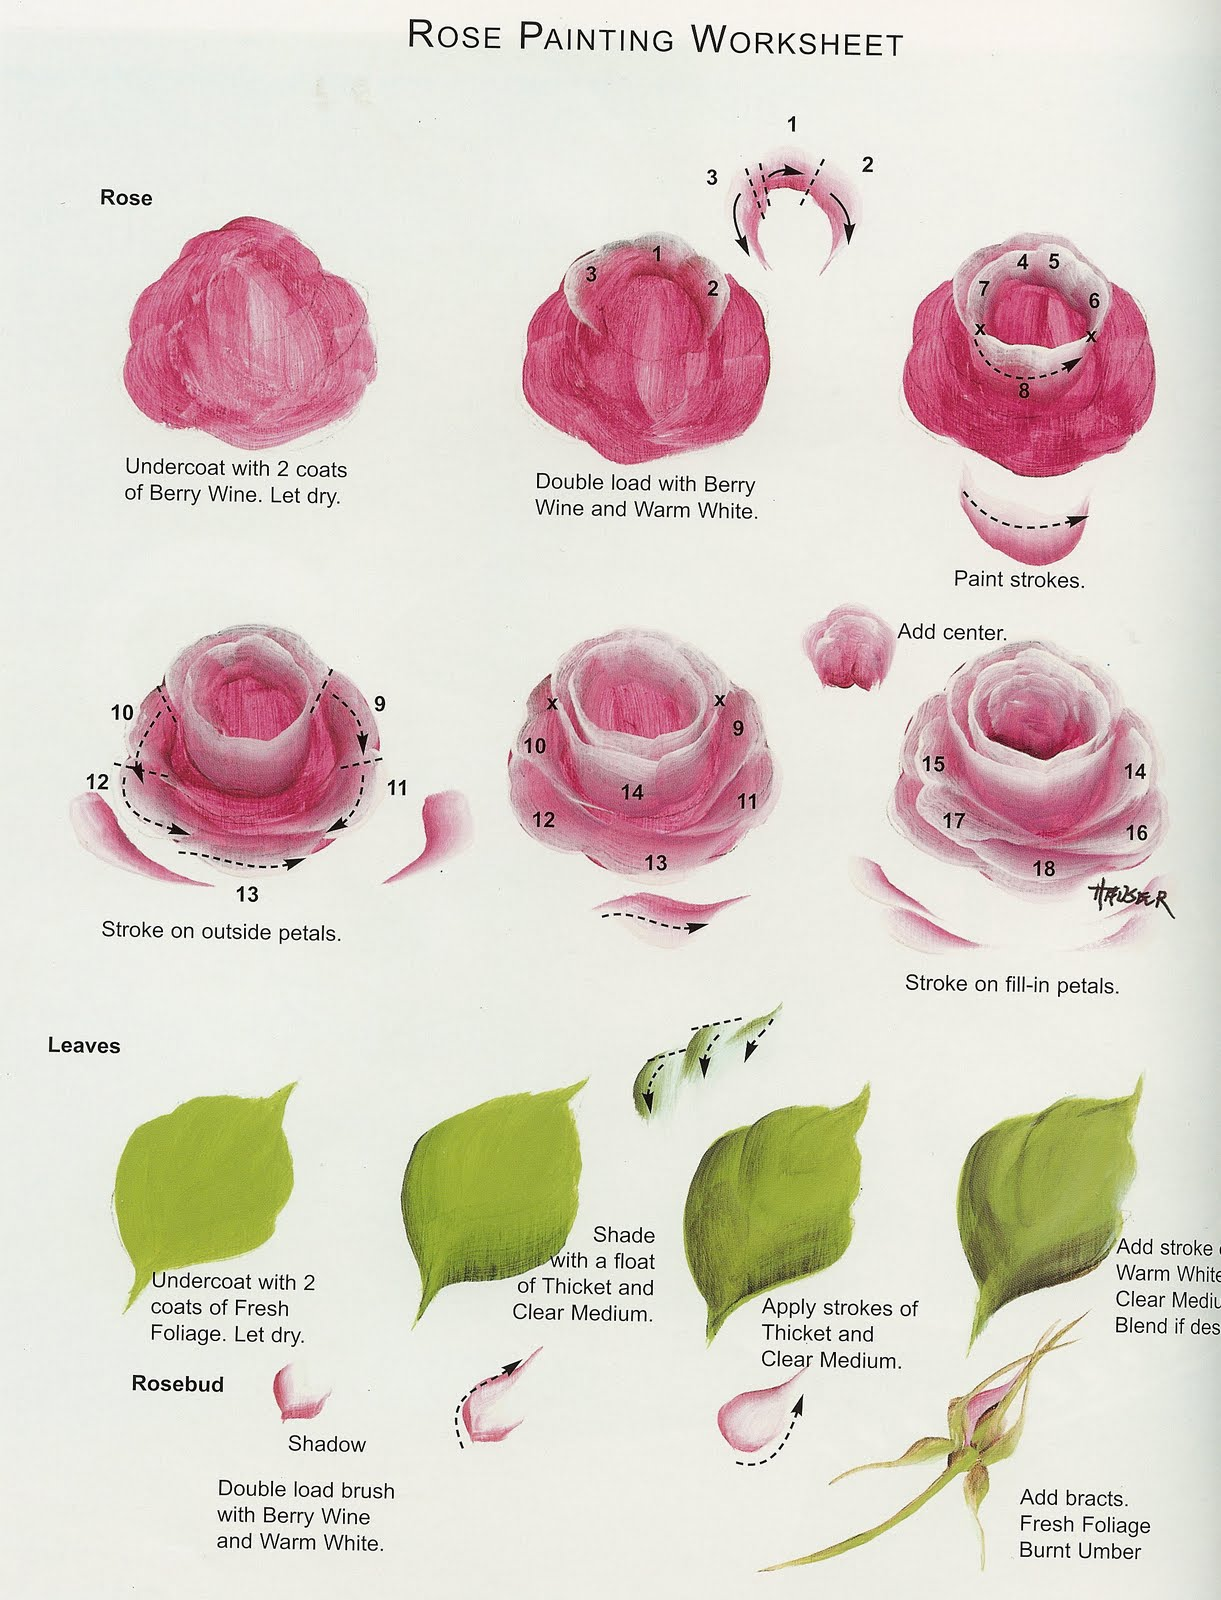 Steps painting roses 1221 1600 one stroke for How to paint a rose in watercolor step by step